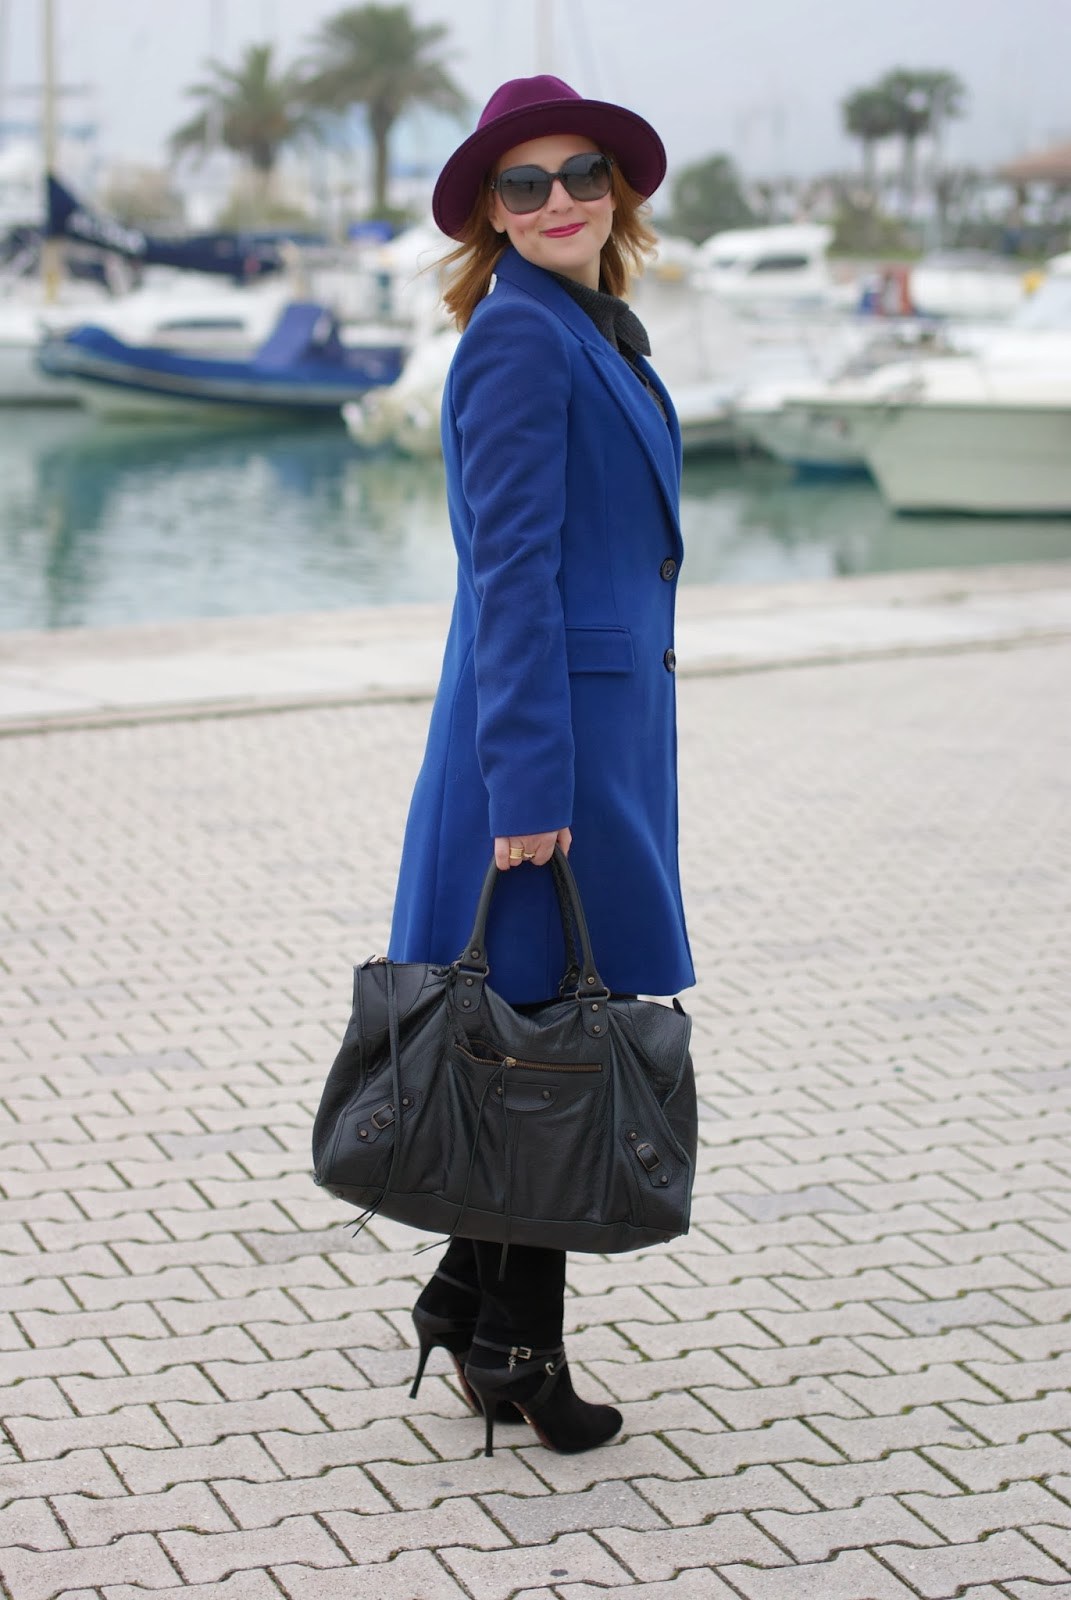 Ecua-Andino hat, cobalt blue coat, Balenciaga work bag, Fashion and Cookies, fashion blogger